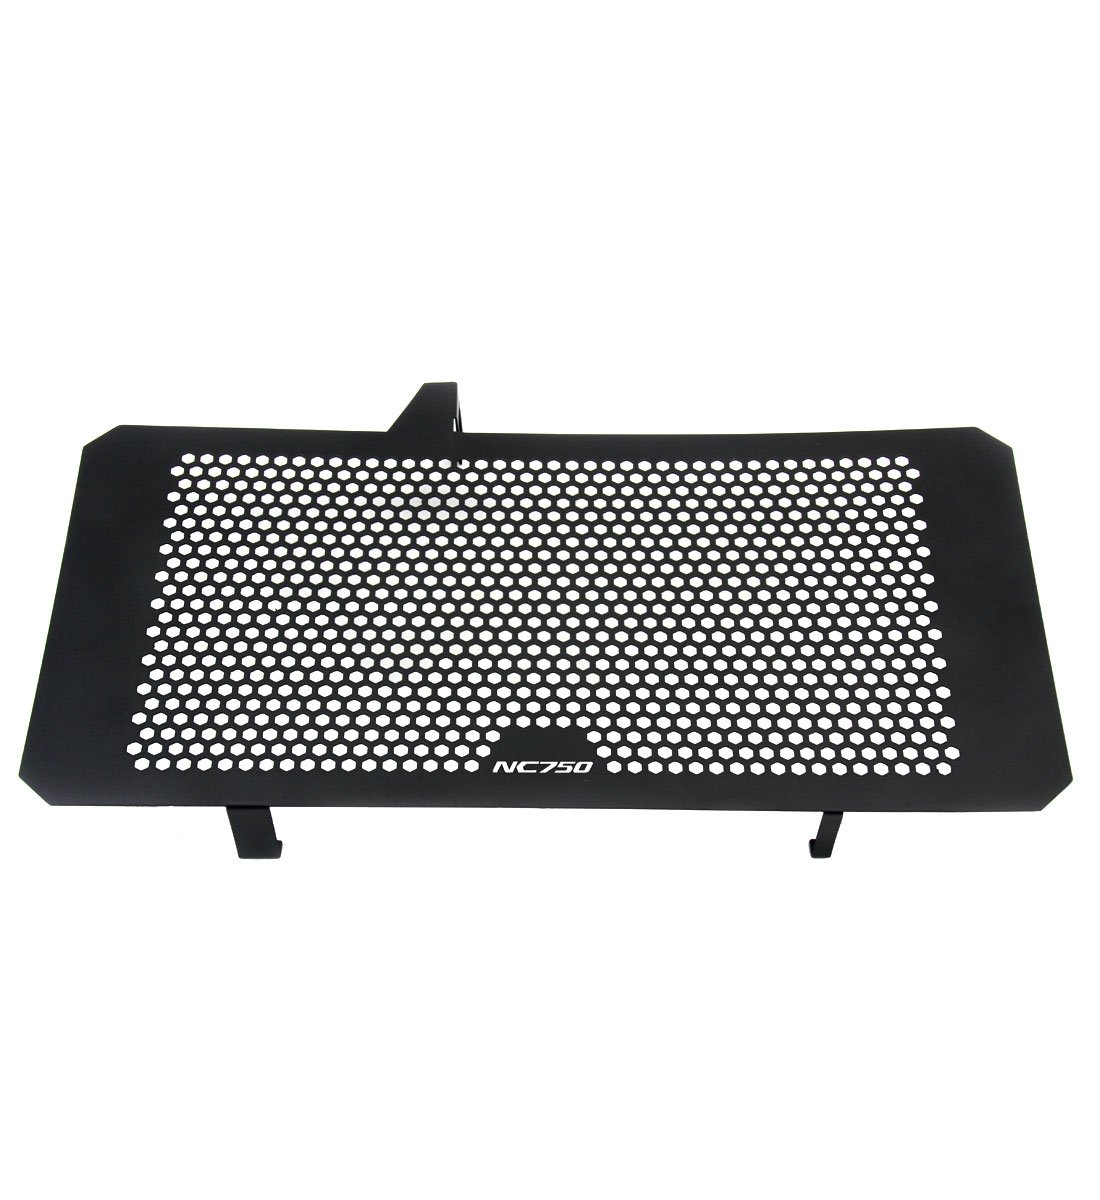 Rogue Moto NC750S NC750X Radiator Grille Grill Guard Protective Grill For Honda NC750S 750X